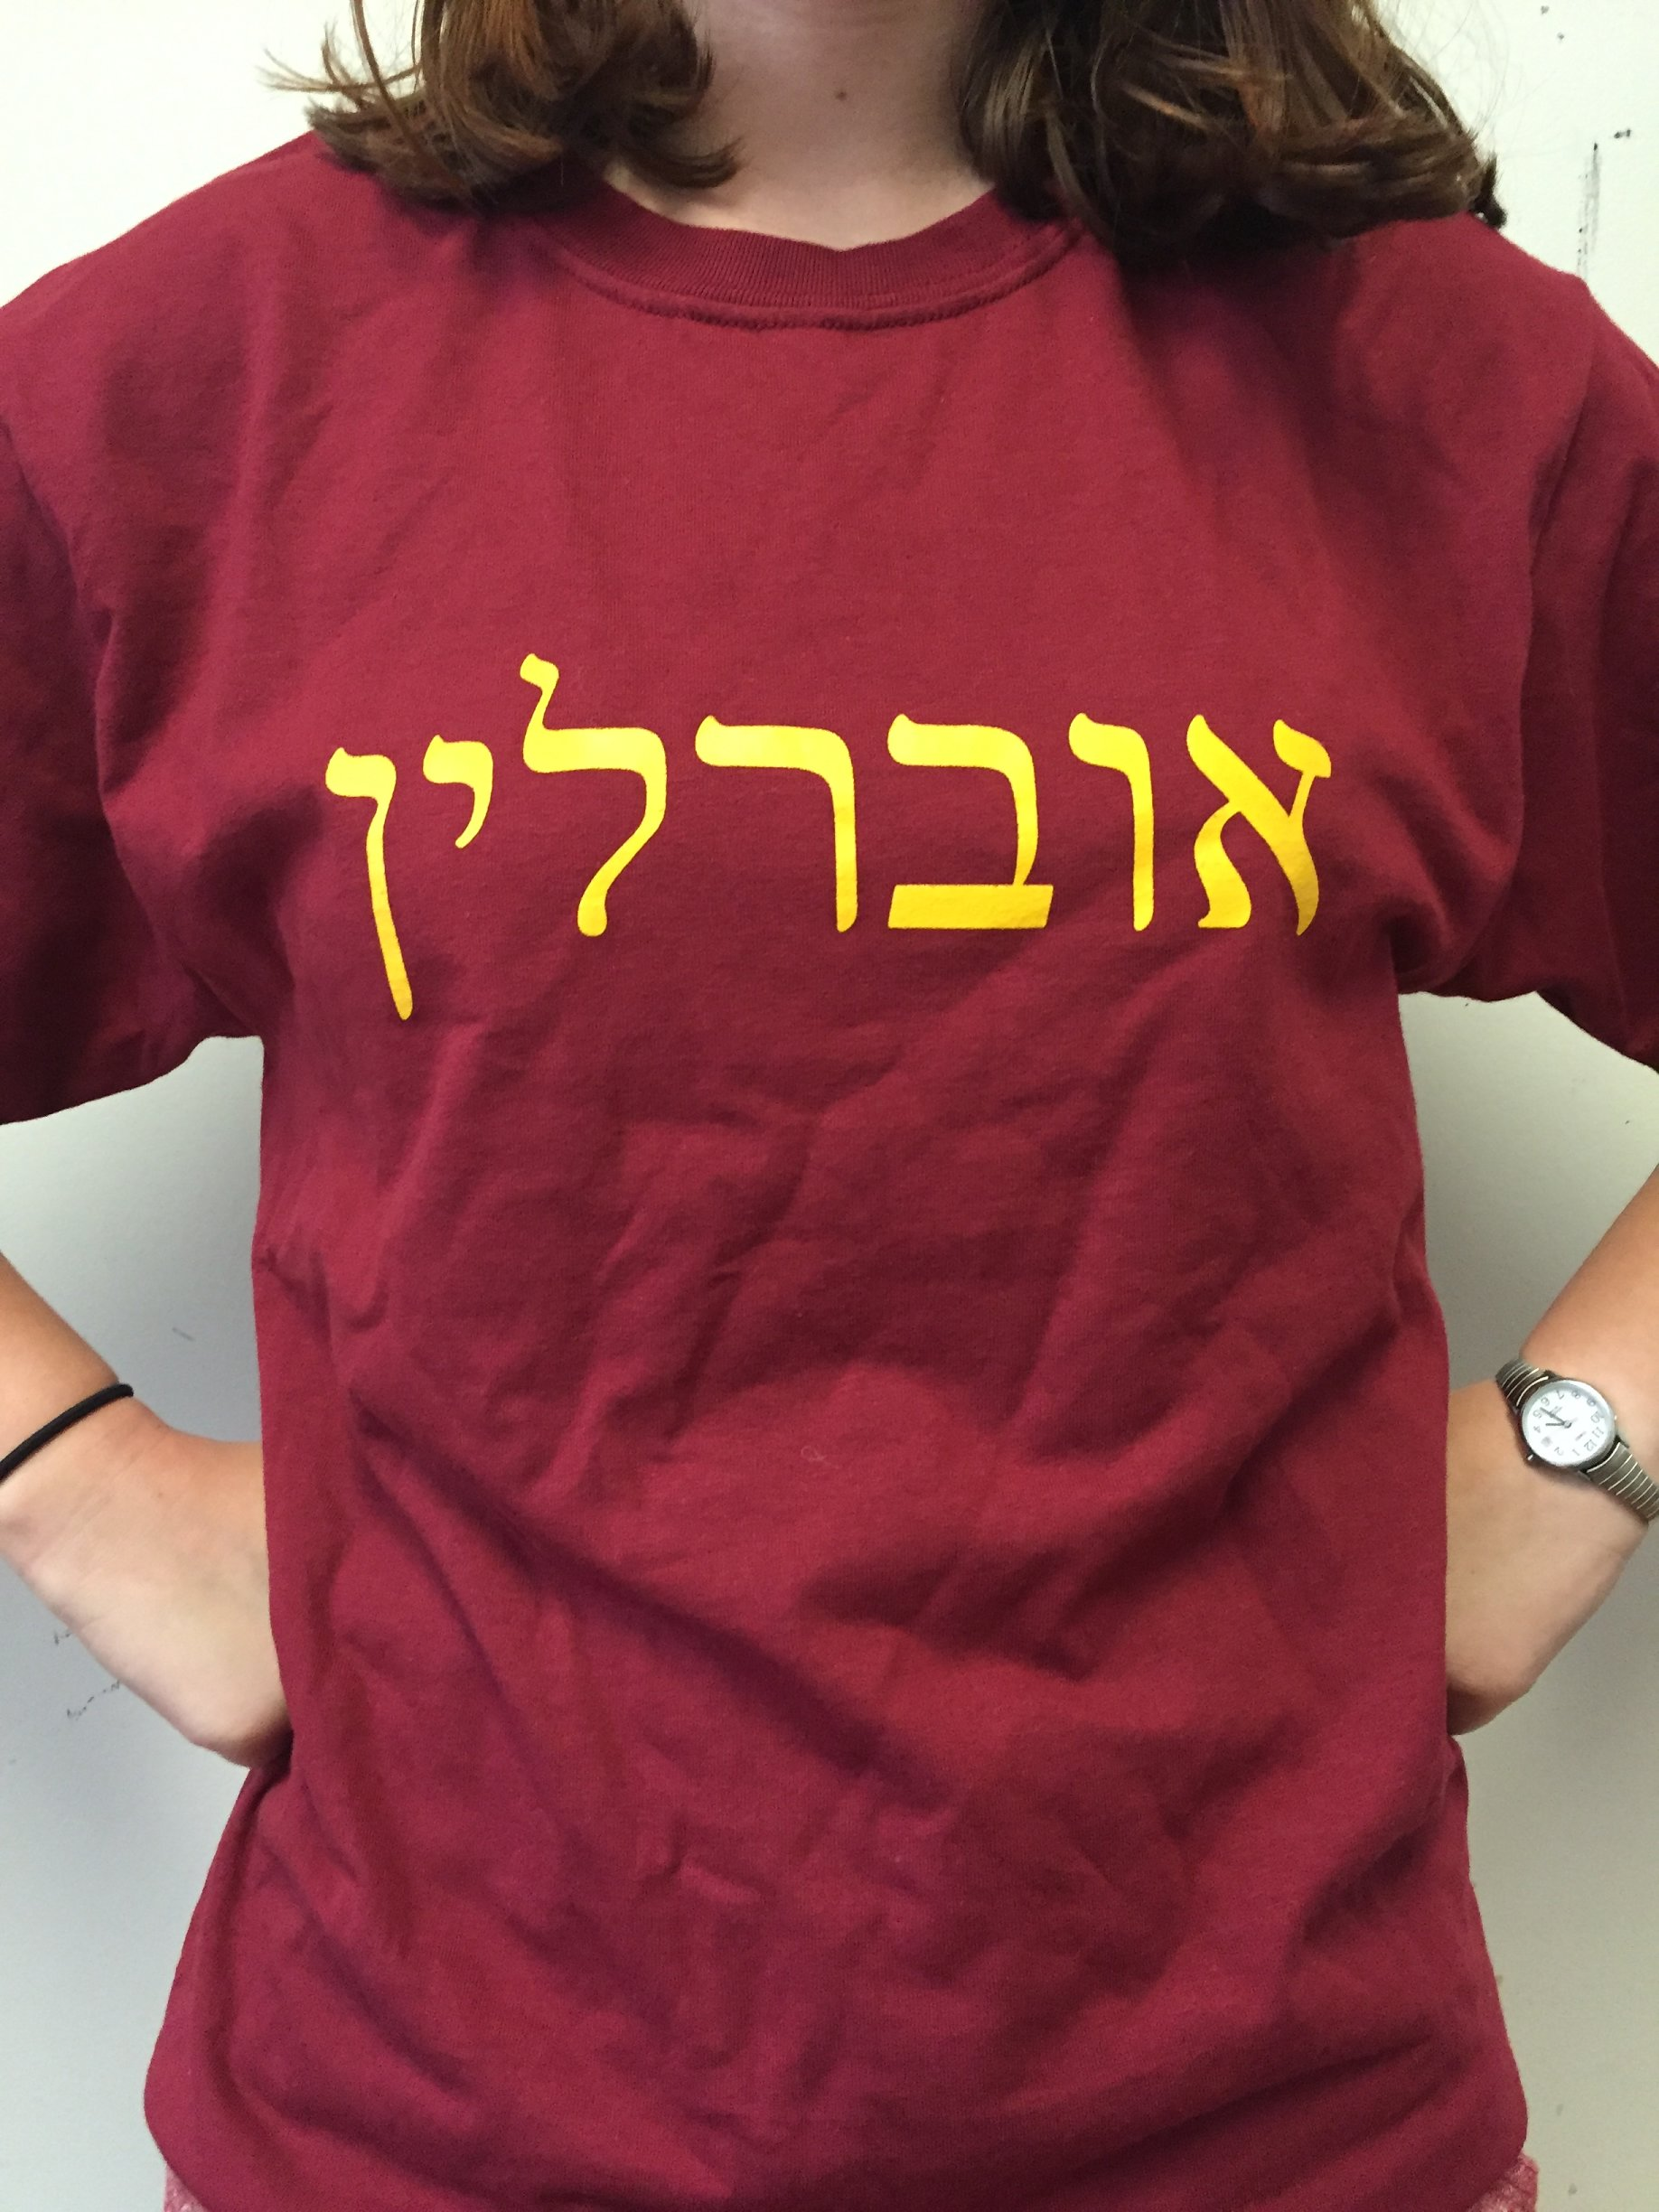 Want some Oberlin Hillel swag? - To purchase one of our amazing Oberlin Hillel tee-shirts (sizes: adult S/M/L), please contact Talia Rodwin, at jalperin@clevelandhillel.org. Shirts will be around $10-15 depending on shipping costs.Keep your eyes peeled for some new swag coming soon!